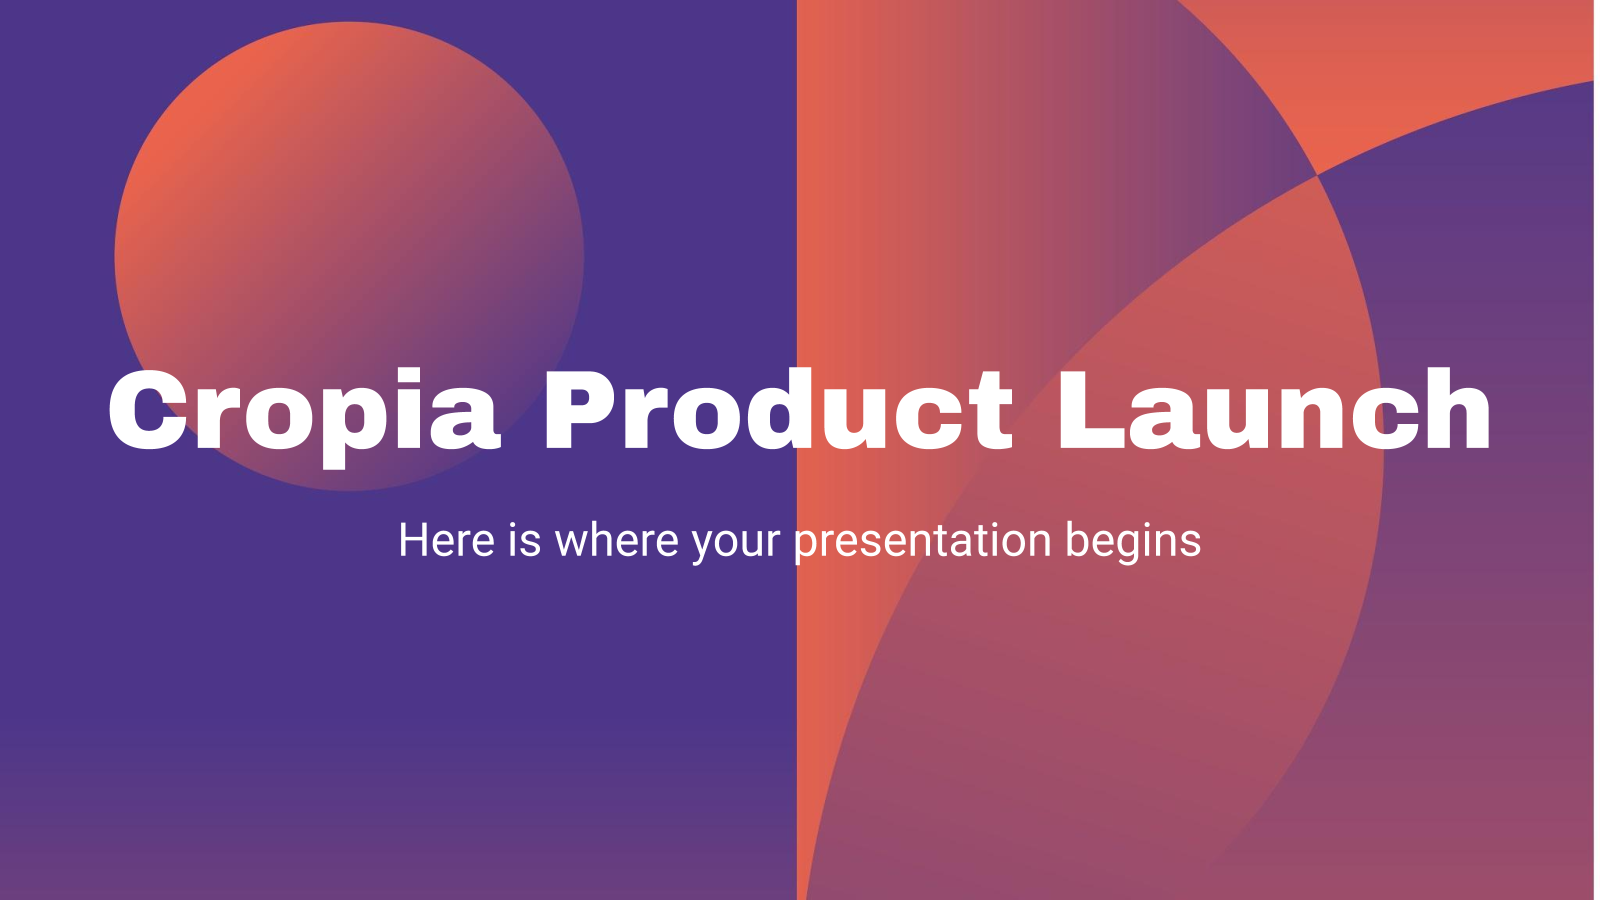 Cropia Product Launch presentation template